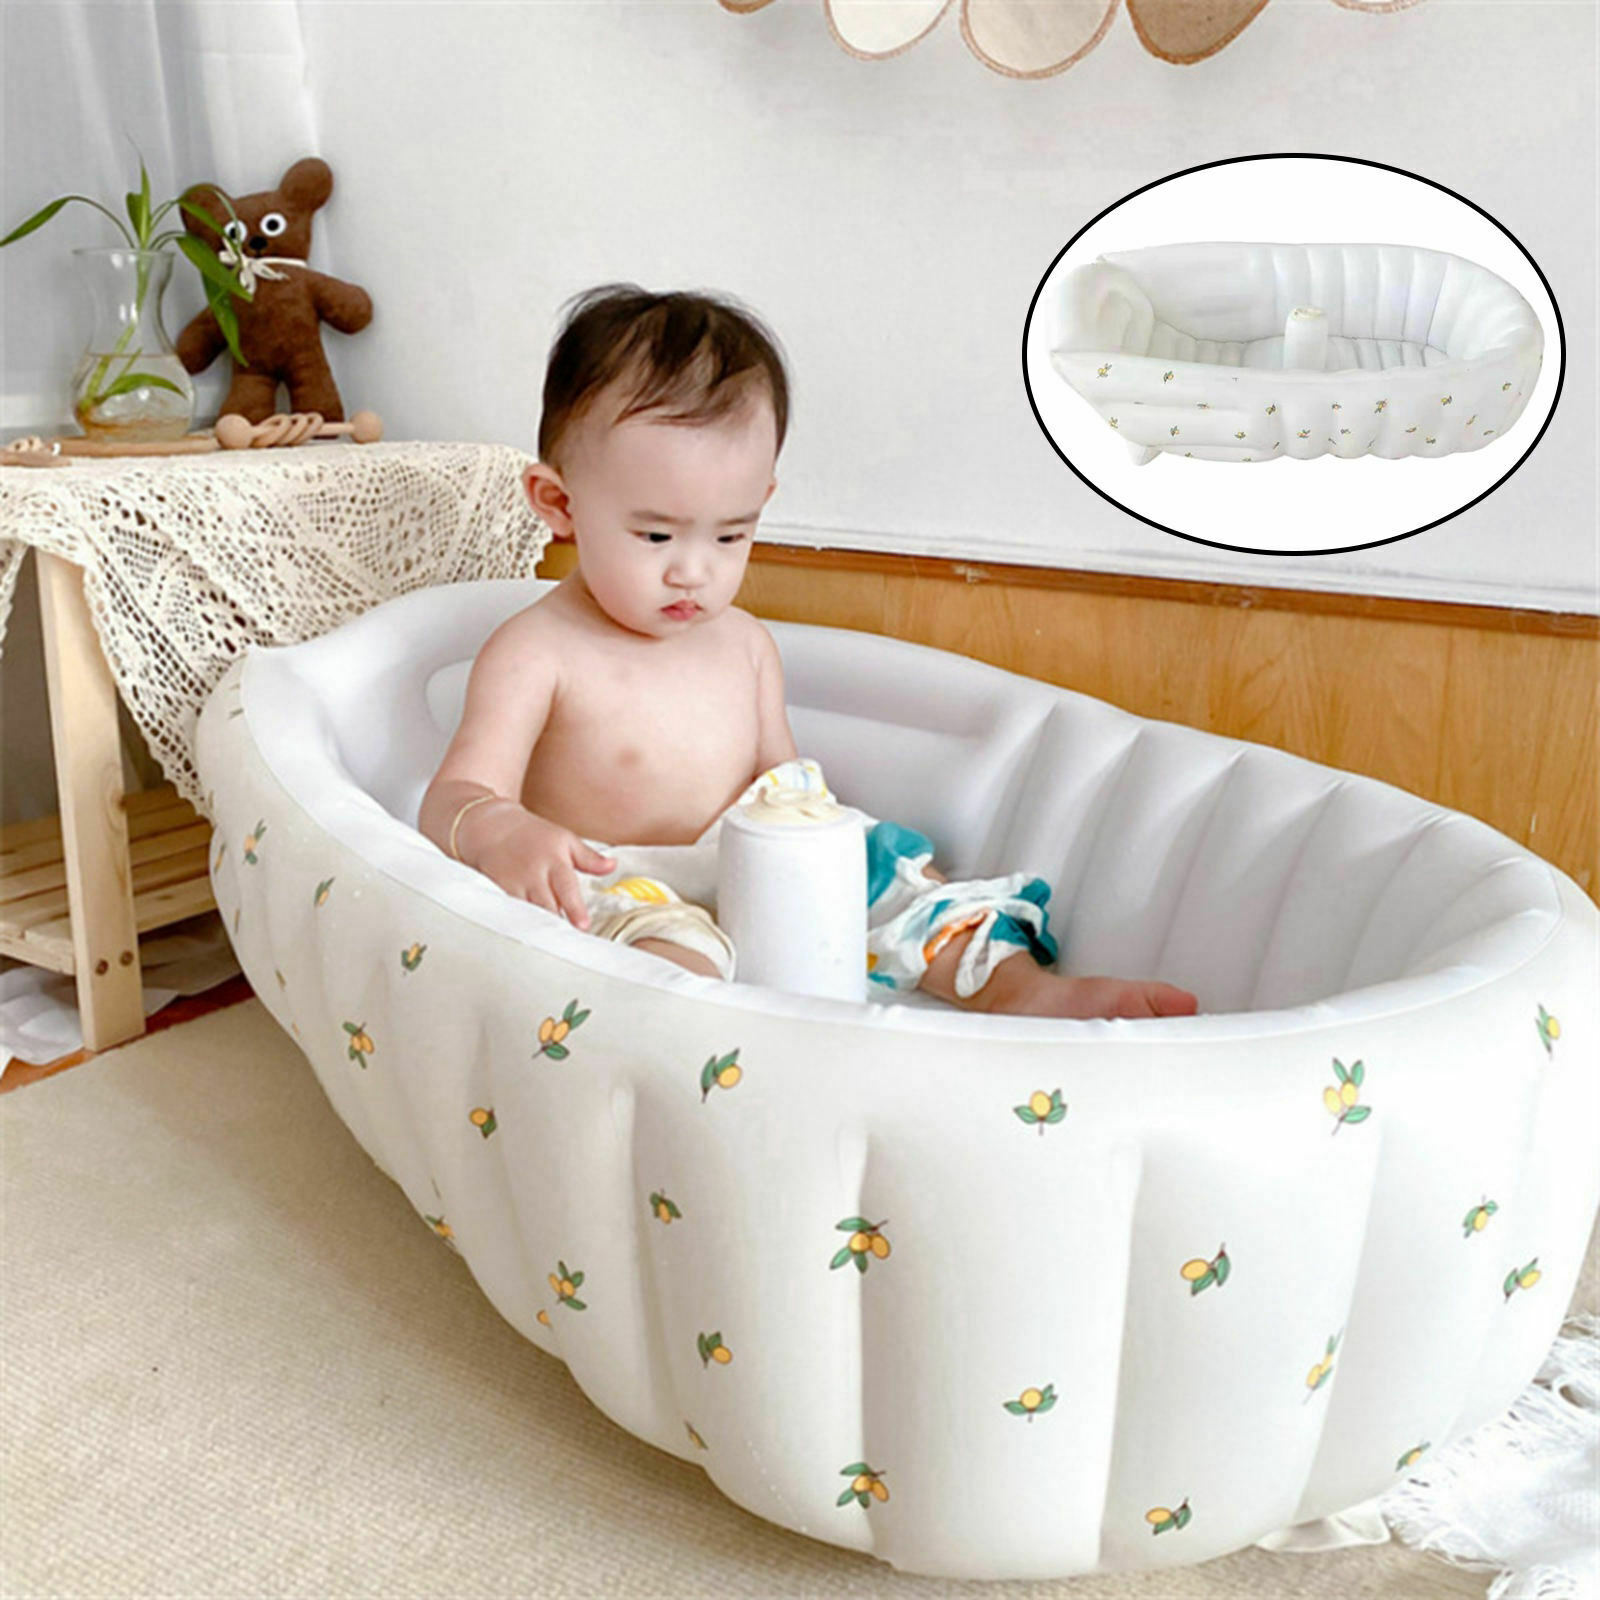 Inflatable Bathtub Practical Foldable Thick Durable for Home Infant Family